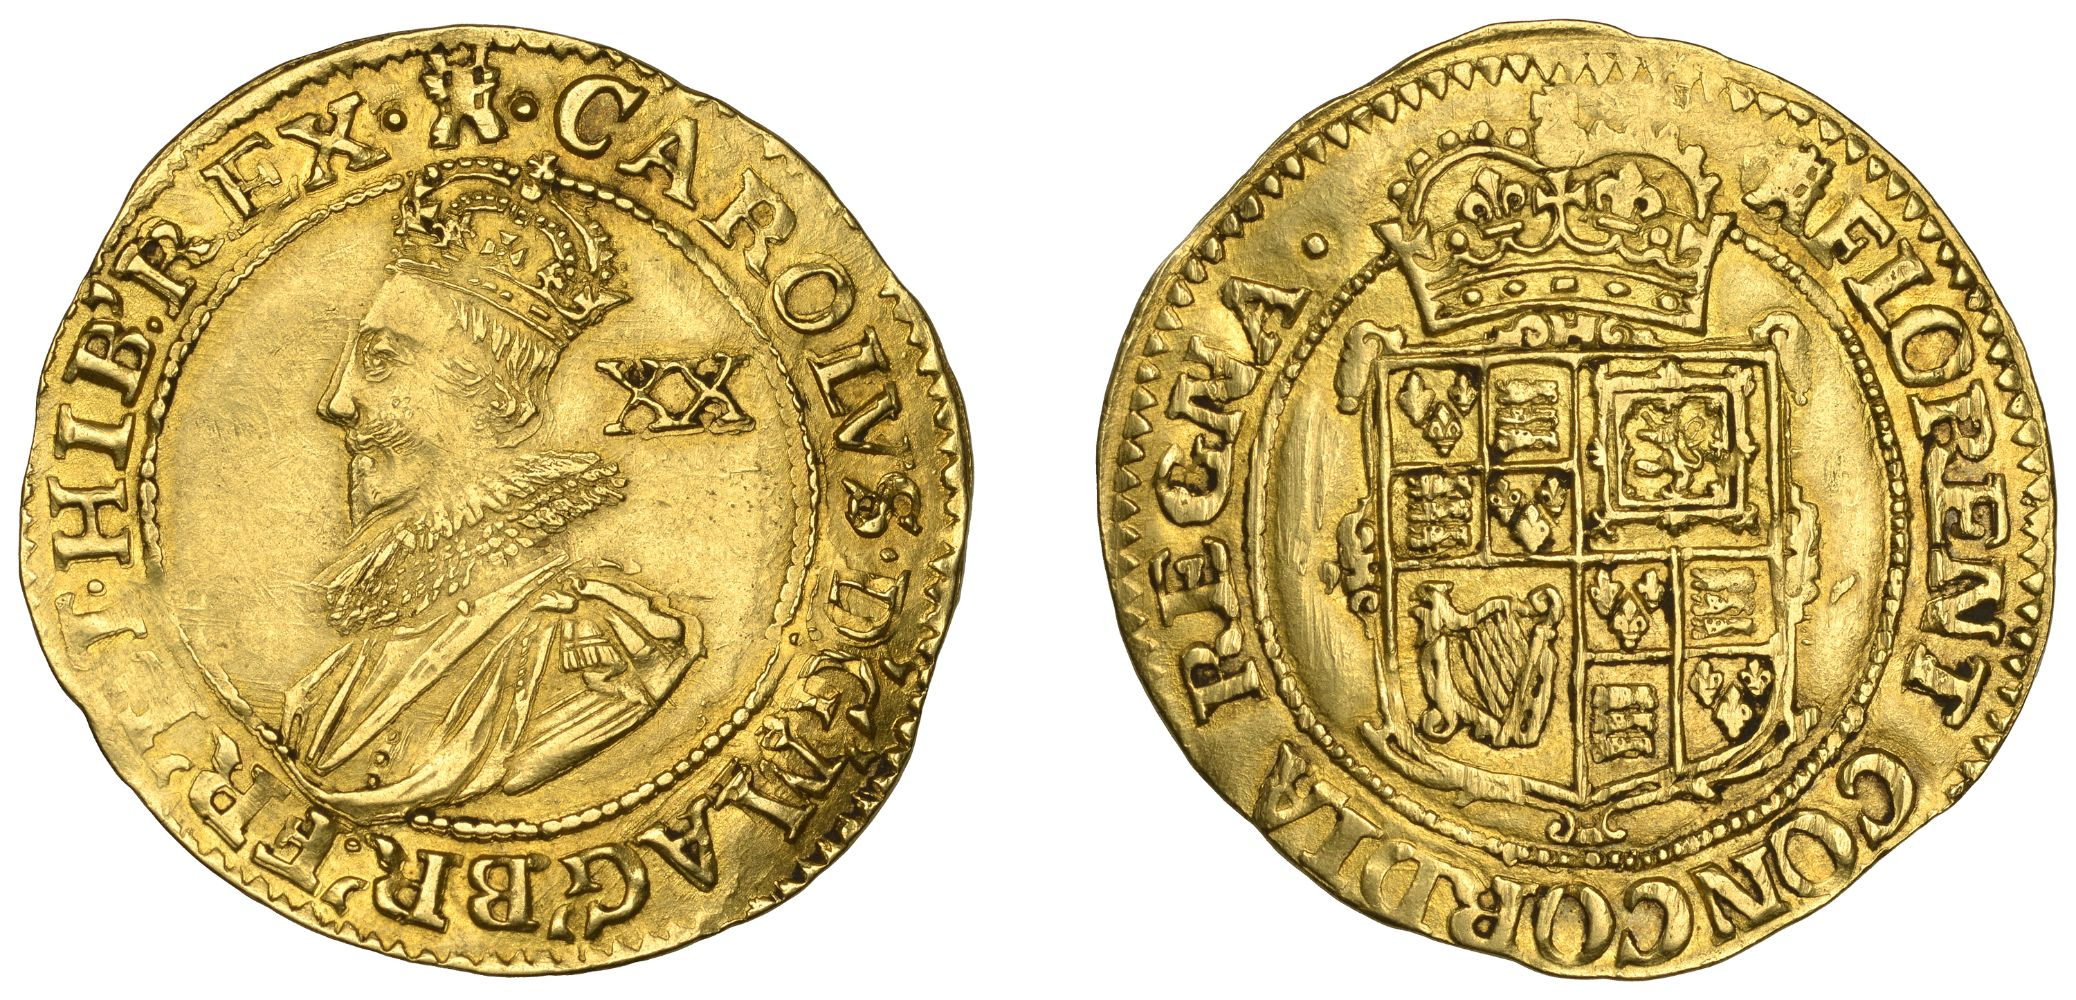 The Gietzelt Collection of British Coins (1625-1660)